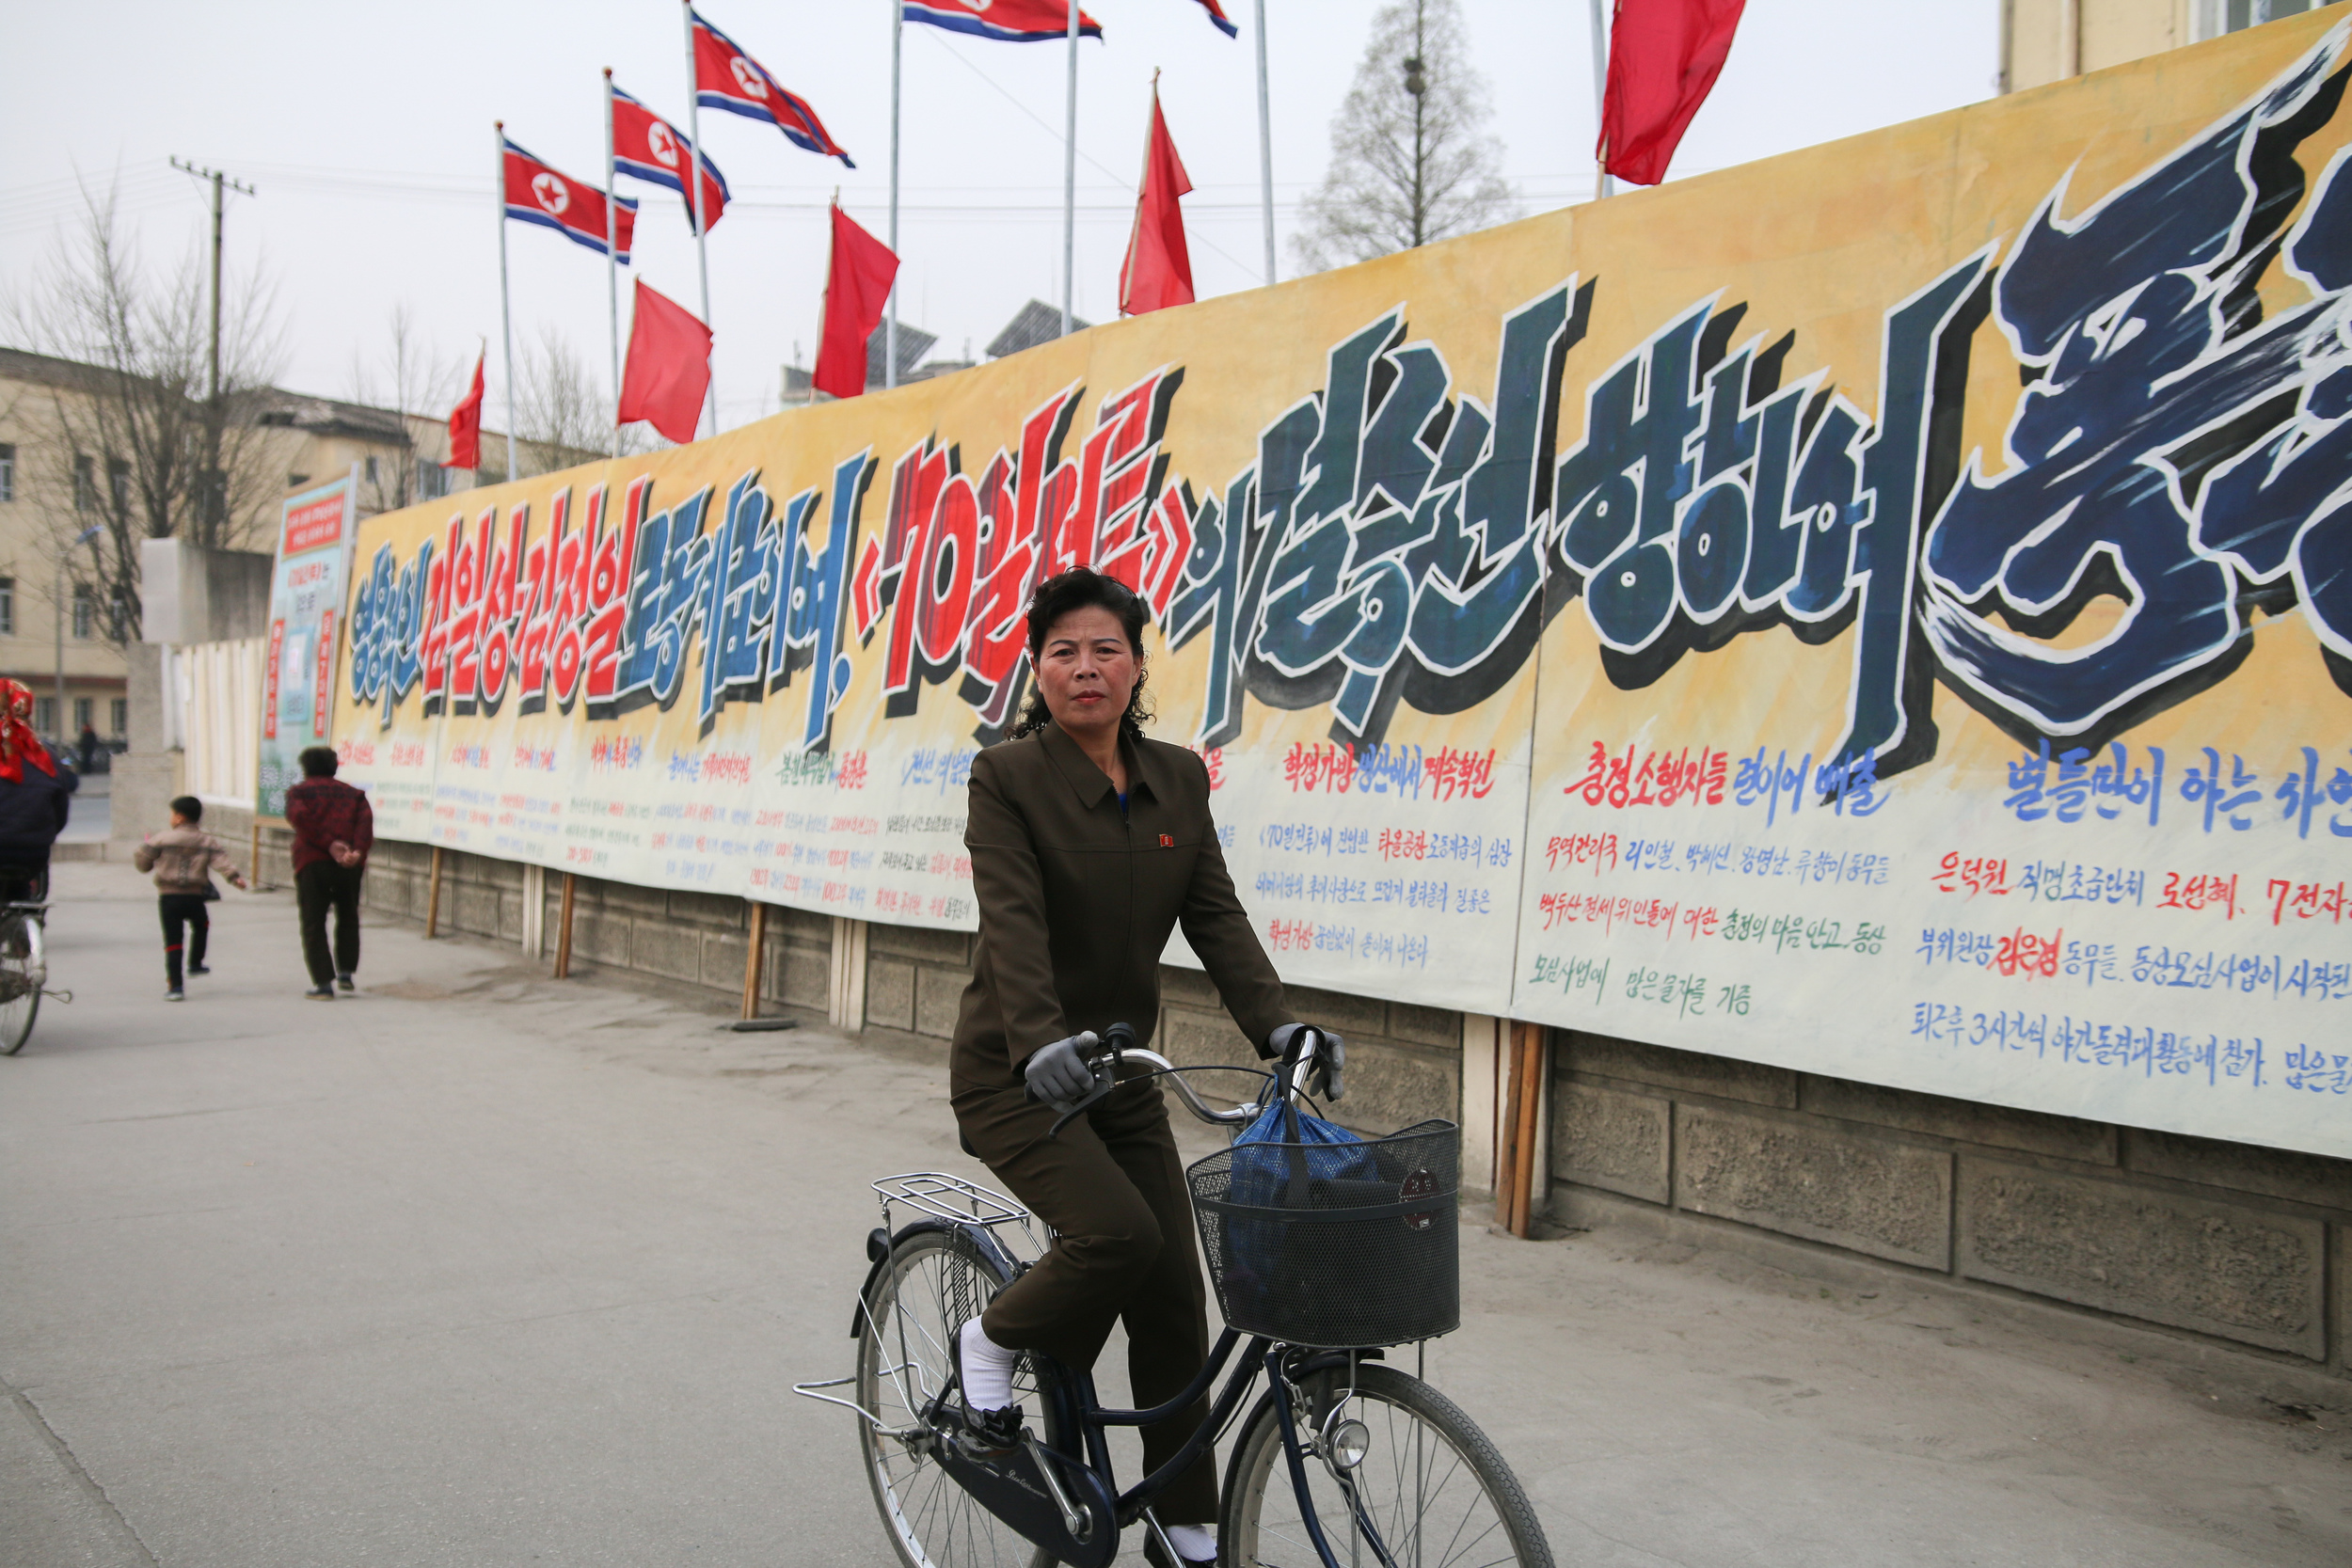 A woman rides past a a sign exhorting victory in the 70 day battle in Kaesong.  Photo by Joe Han